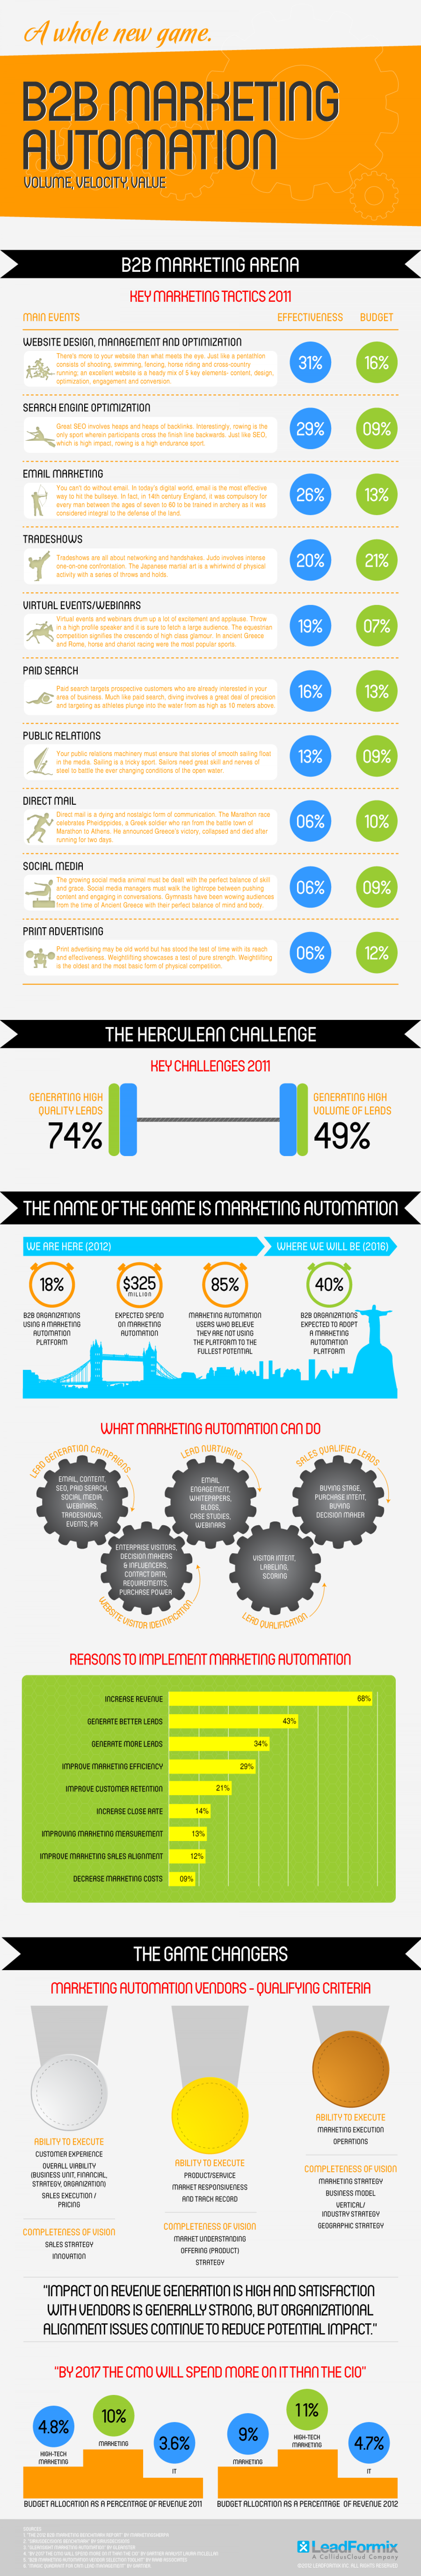 B2B Marketing Automation Infographic